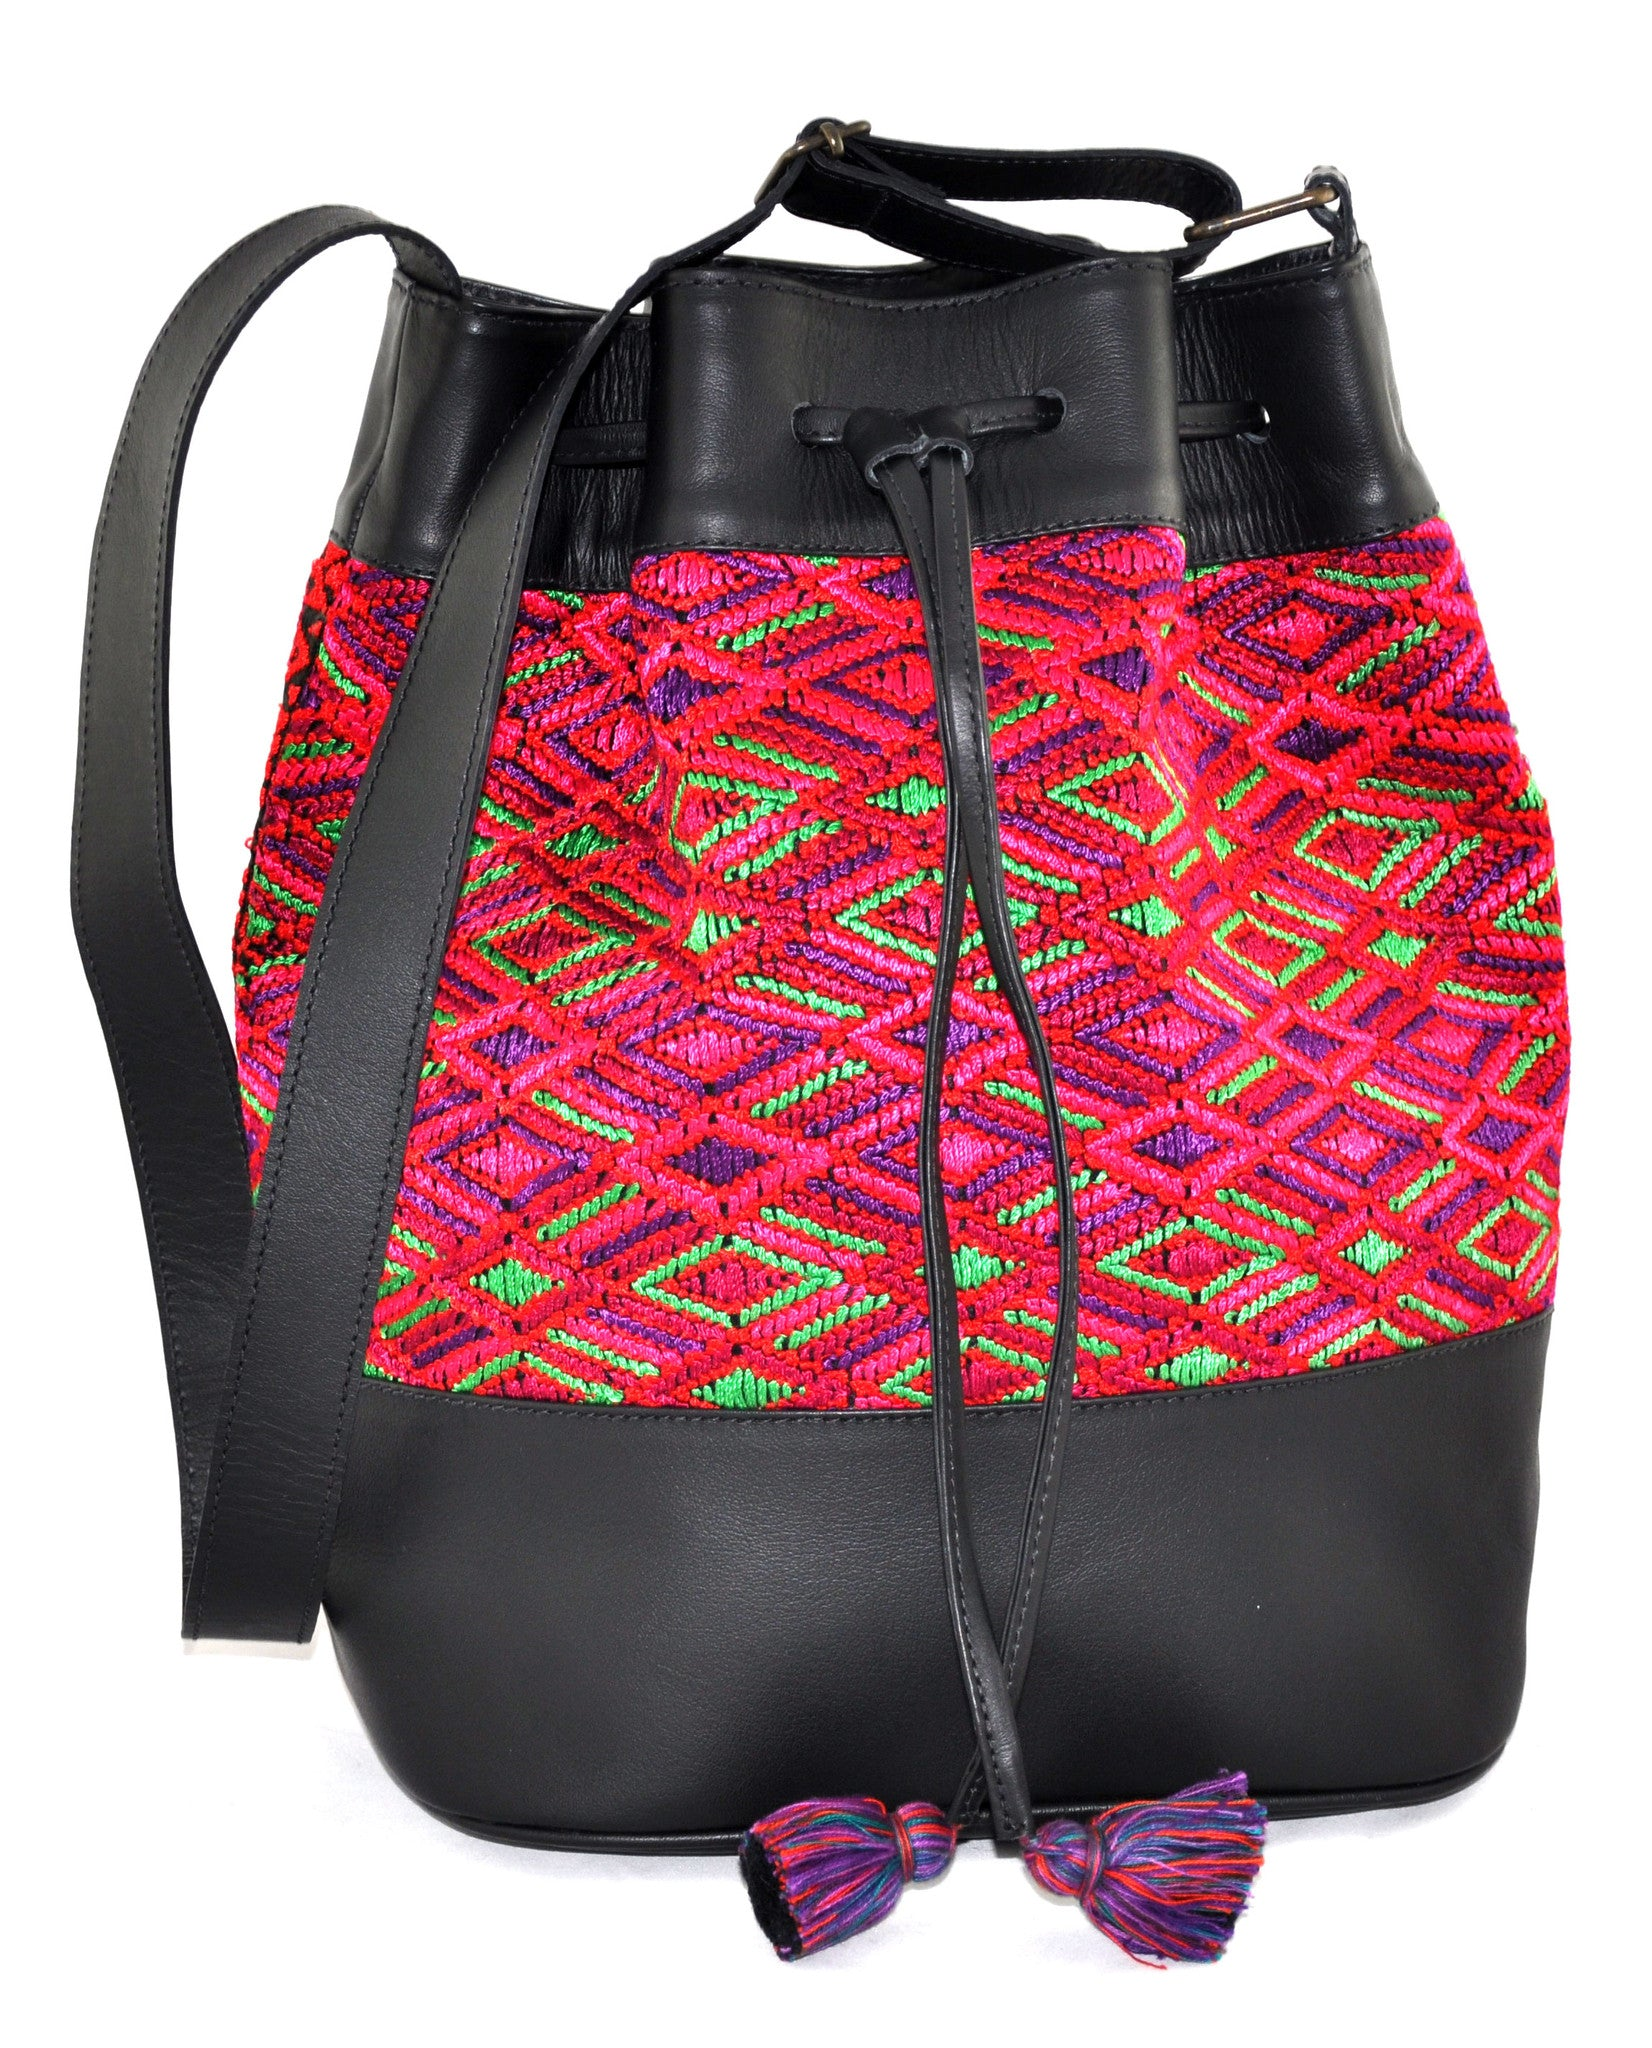 Huipil Bucket Bag - Red & Green Huipil on Black Leather